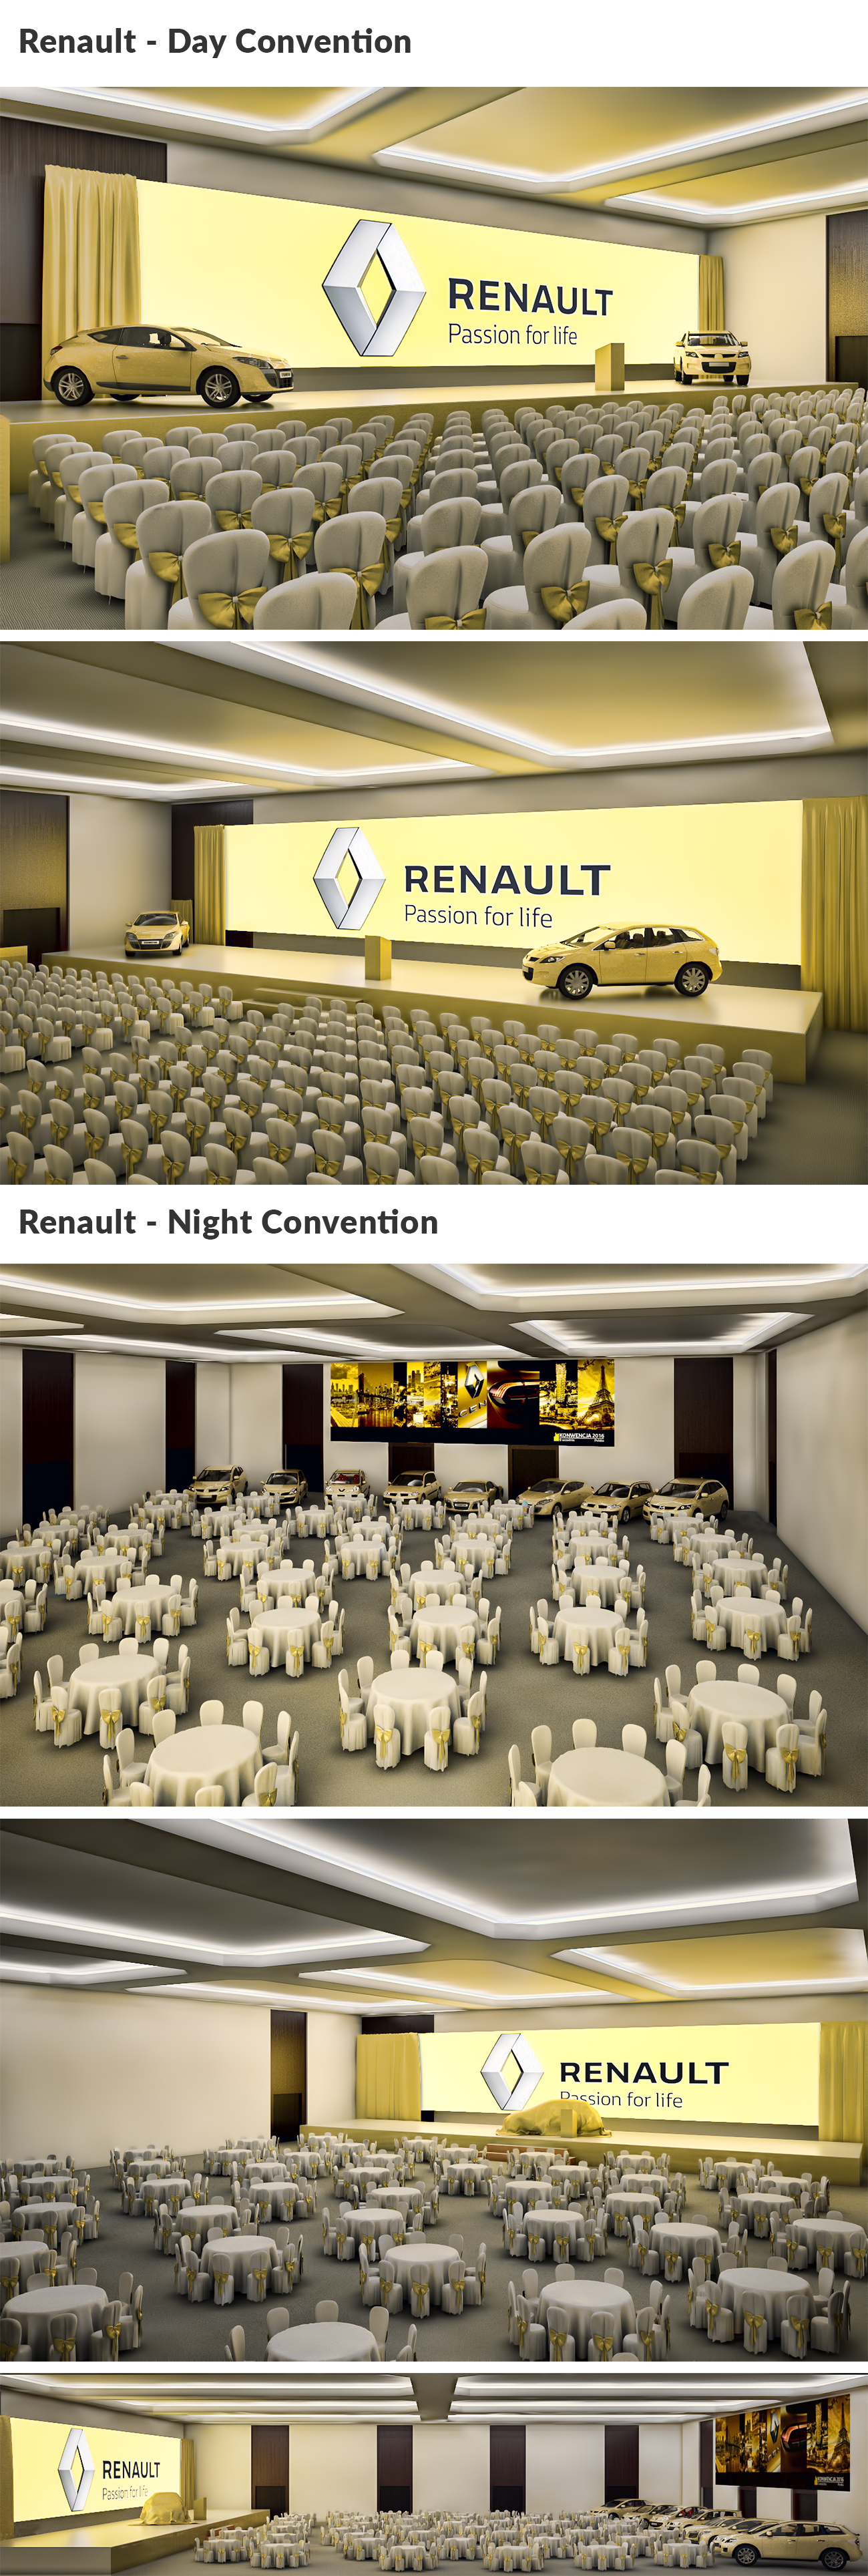 Renault Convention